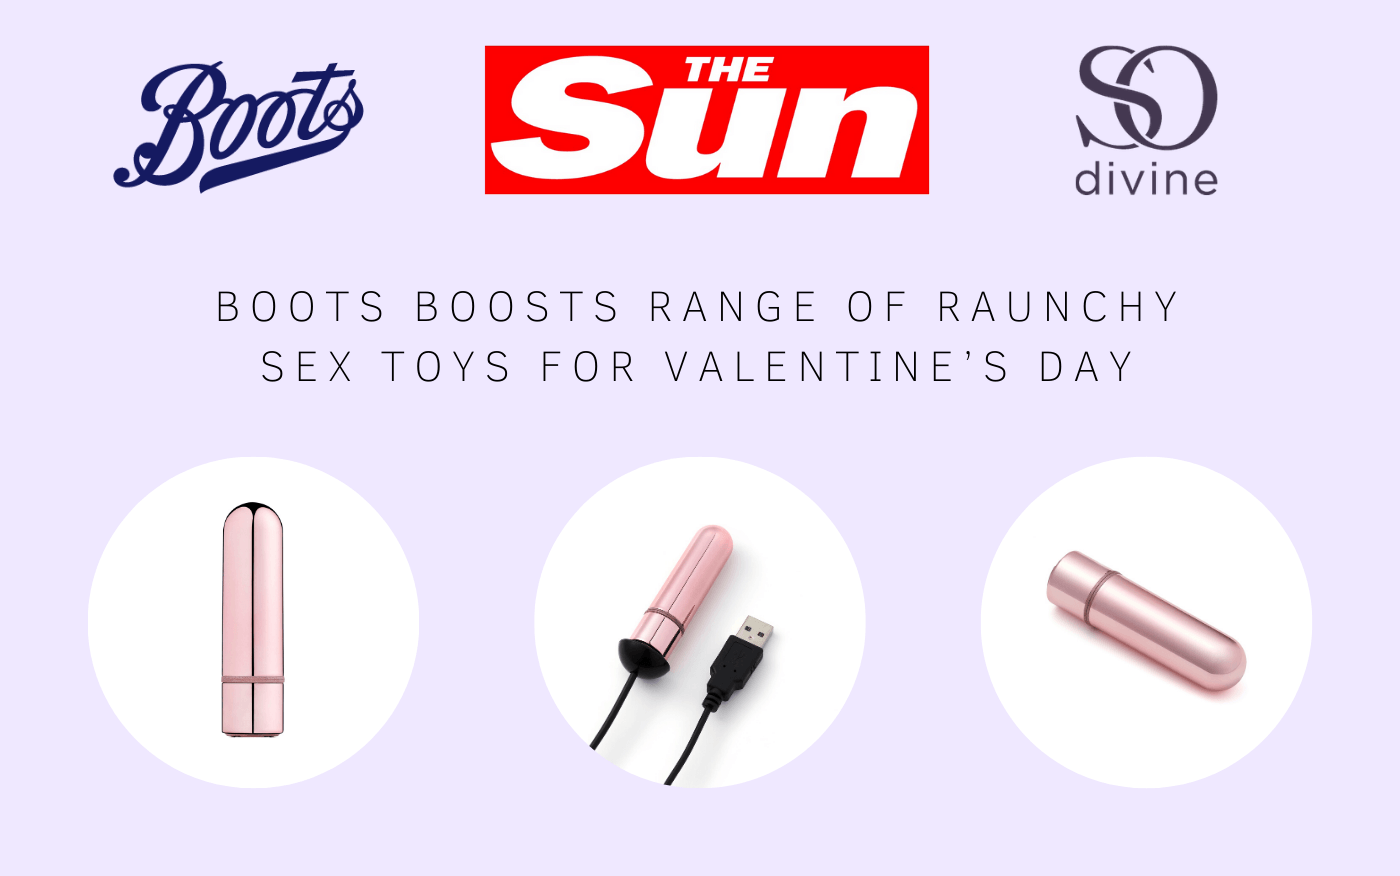 Boots boosts range of raunchy sex toys for Valentine's Day as couples look to get kinkier in the bedroom